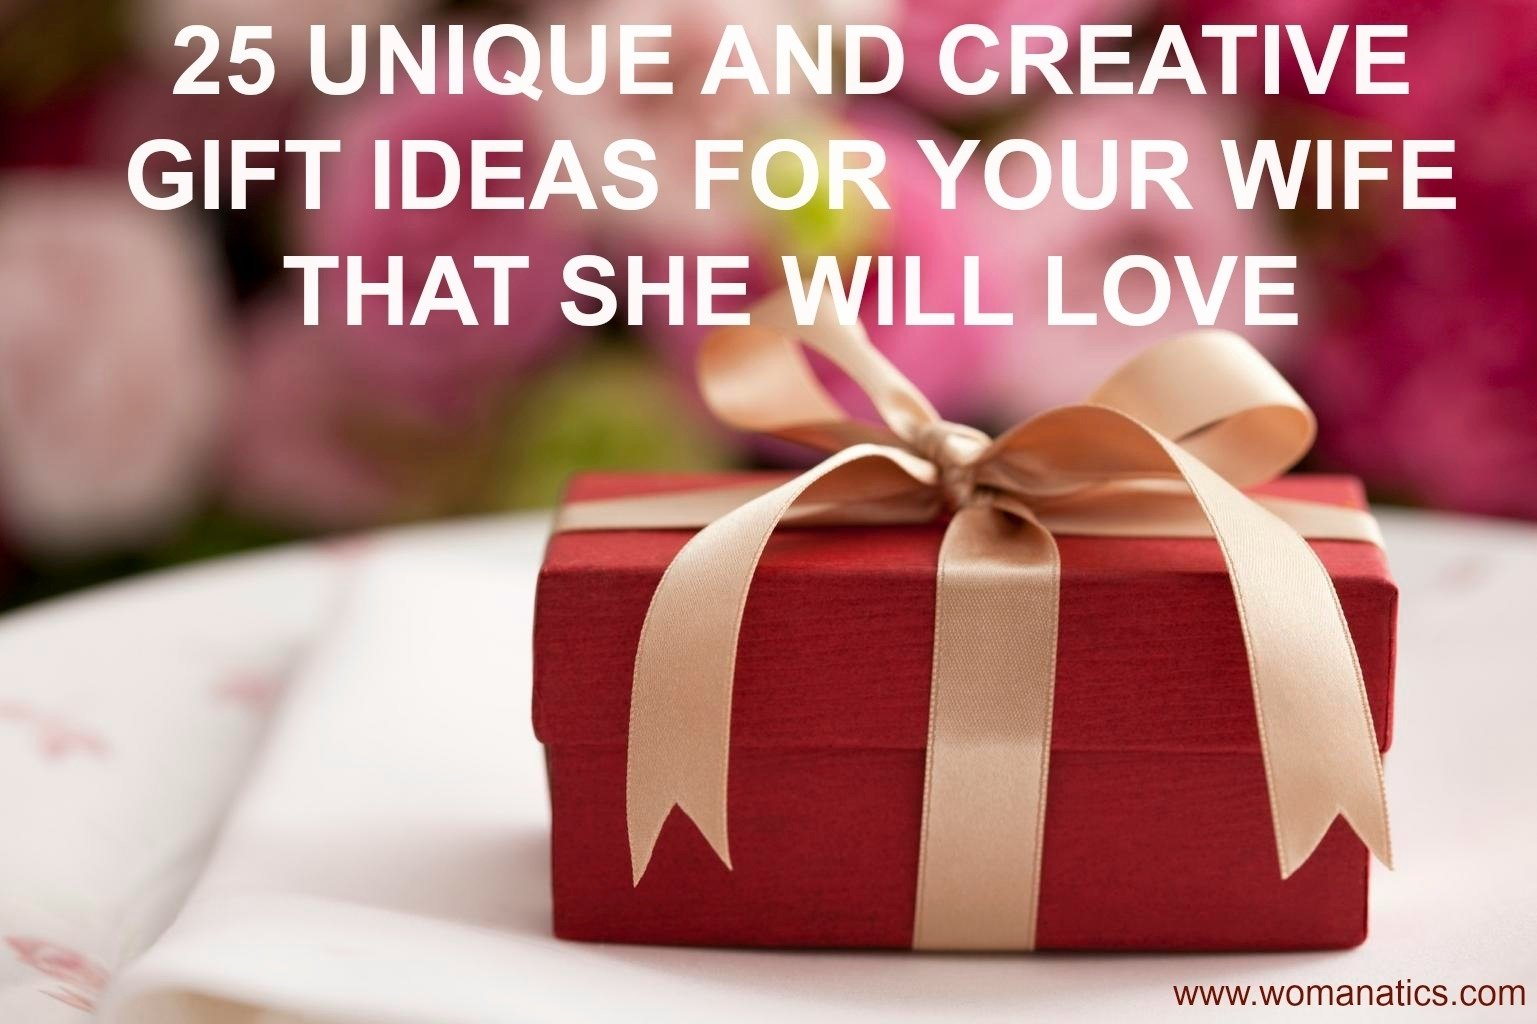 10 Amazing Great Christmas Gift Ideas For Wife 25 unique and creative gift ideas for your wife that she will love 10 2021